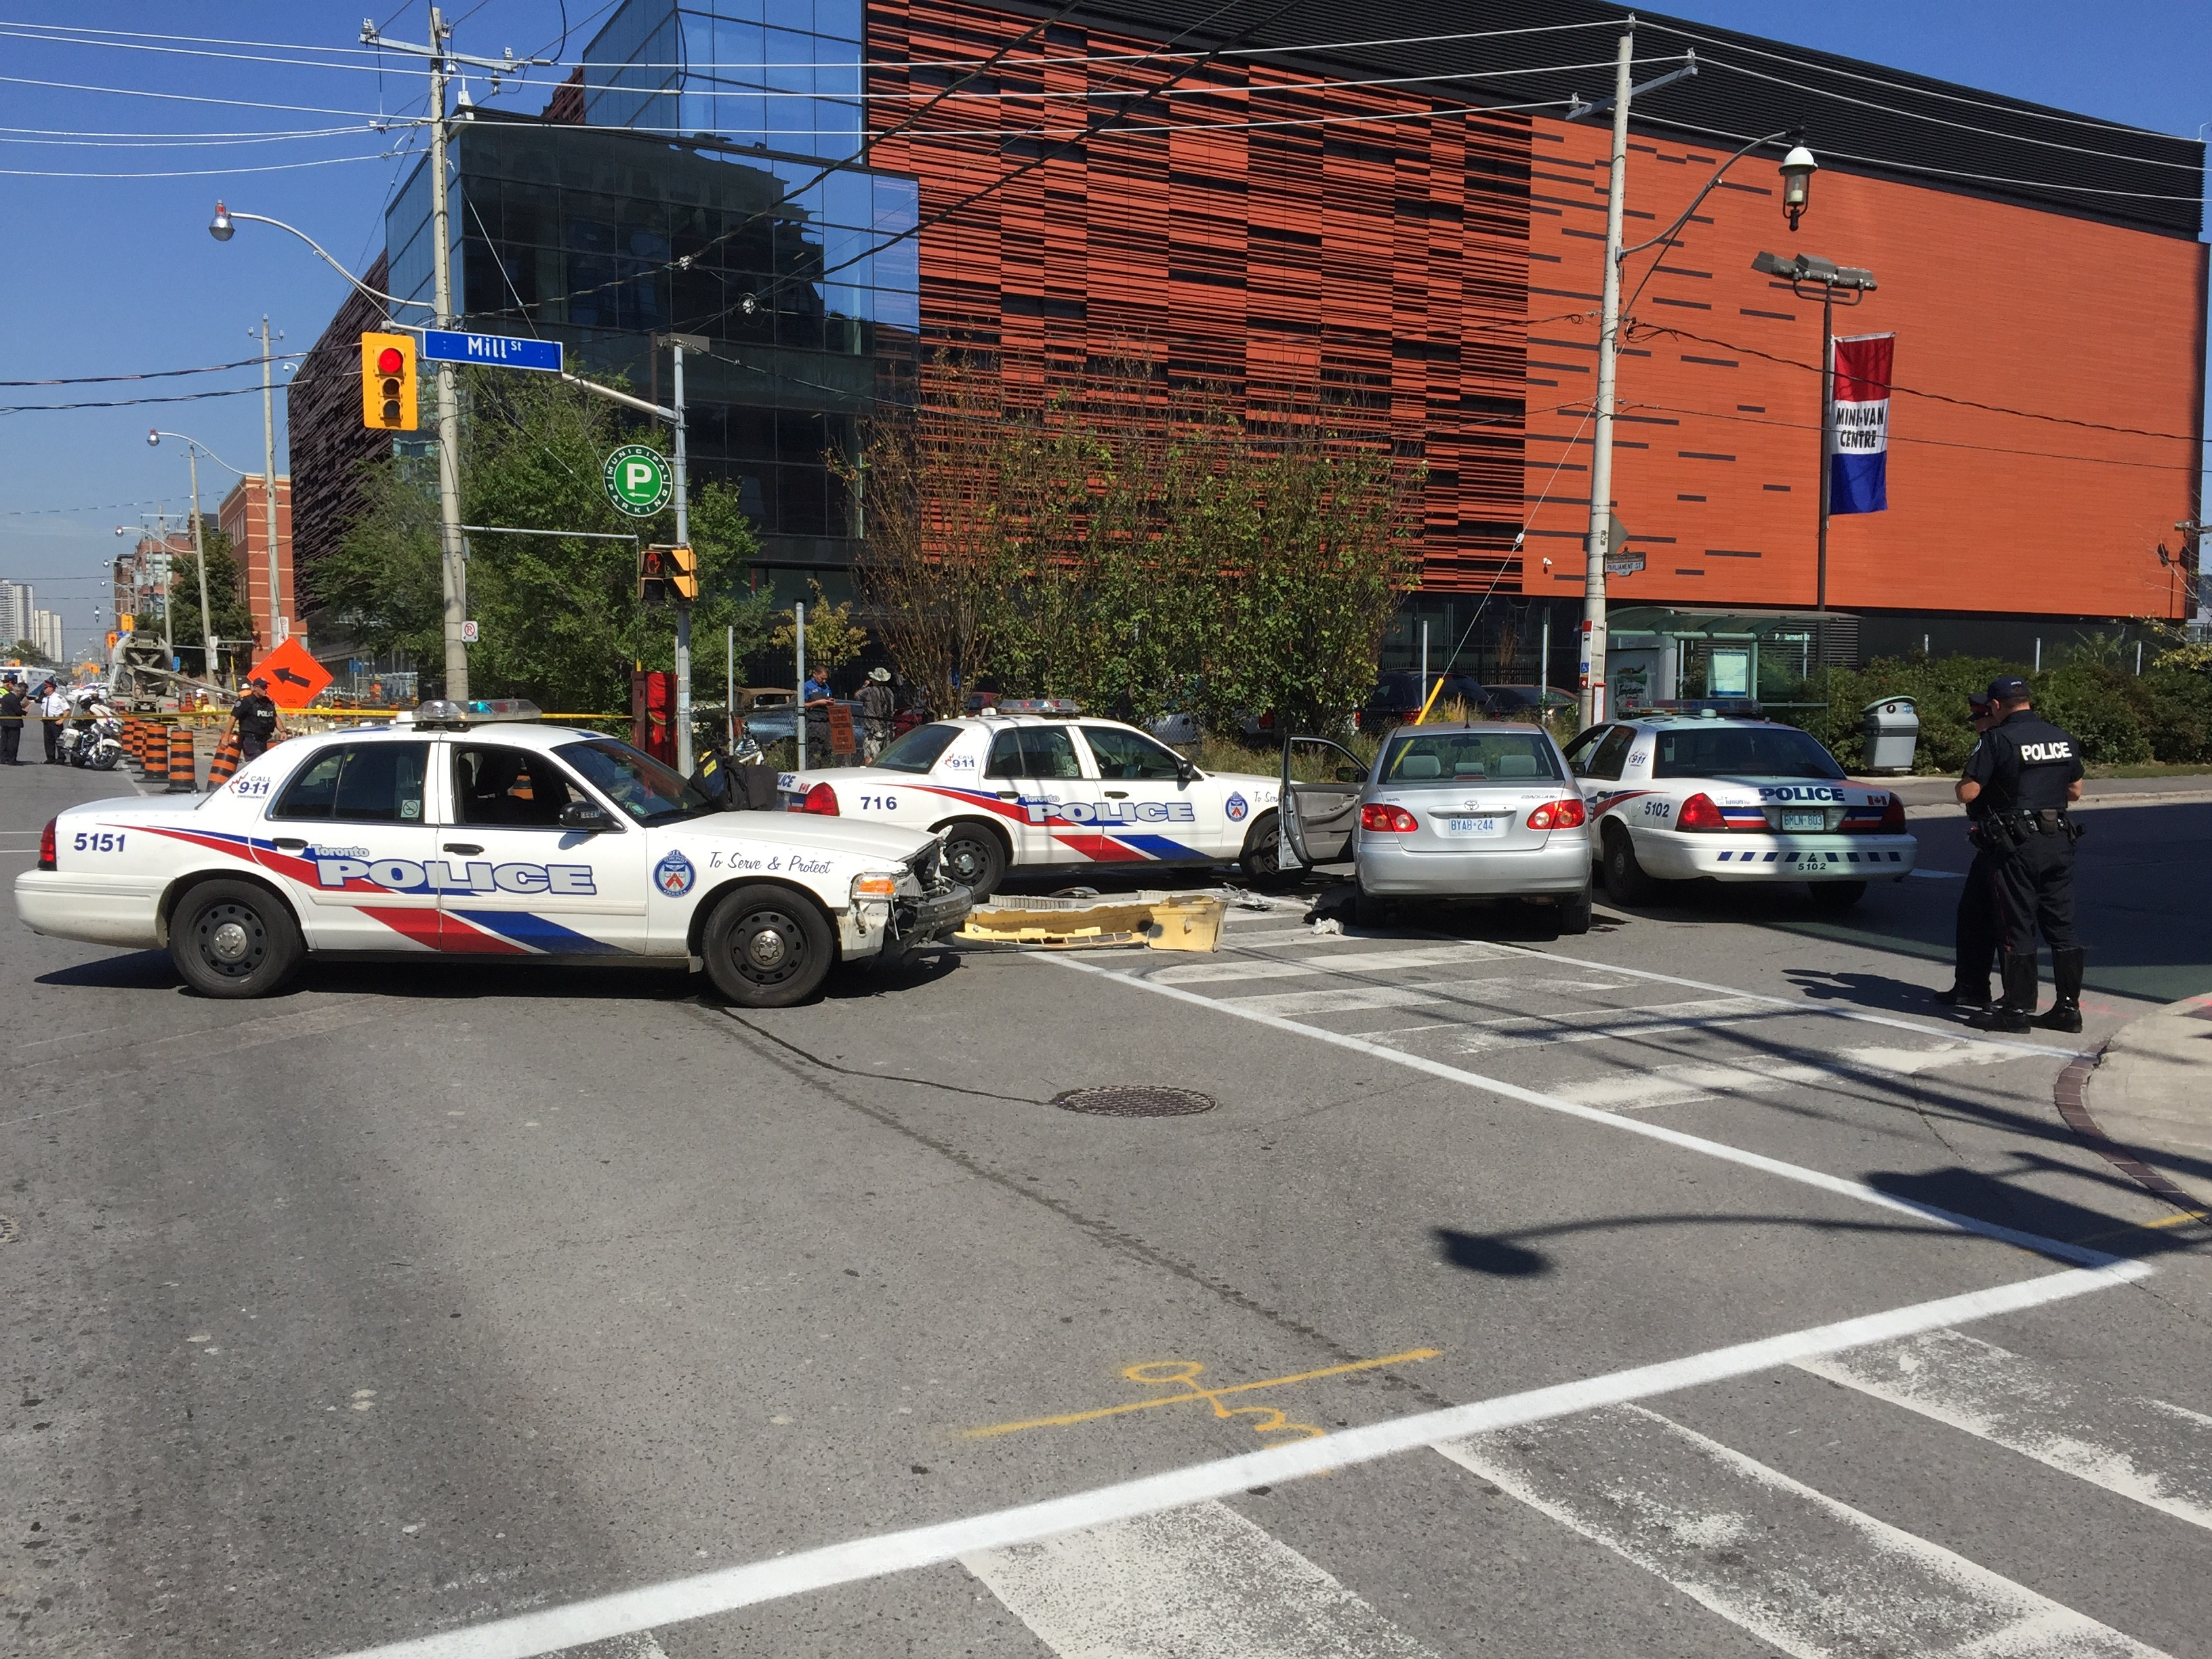 Police on the scene of pursuit in the Distillery District. Ryan Belgrave/CITYNEWS